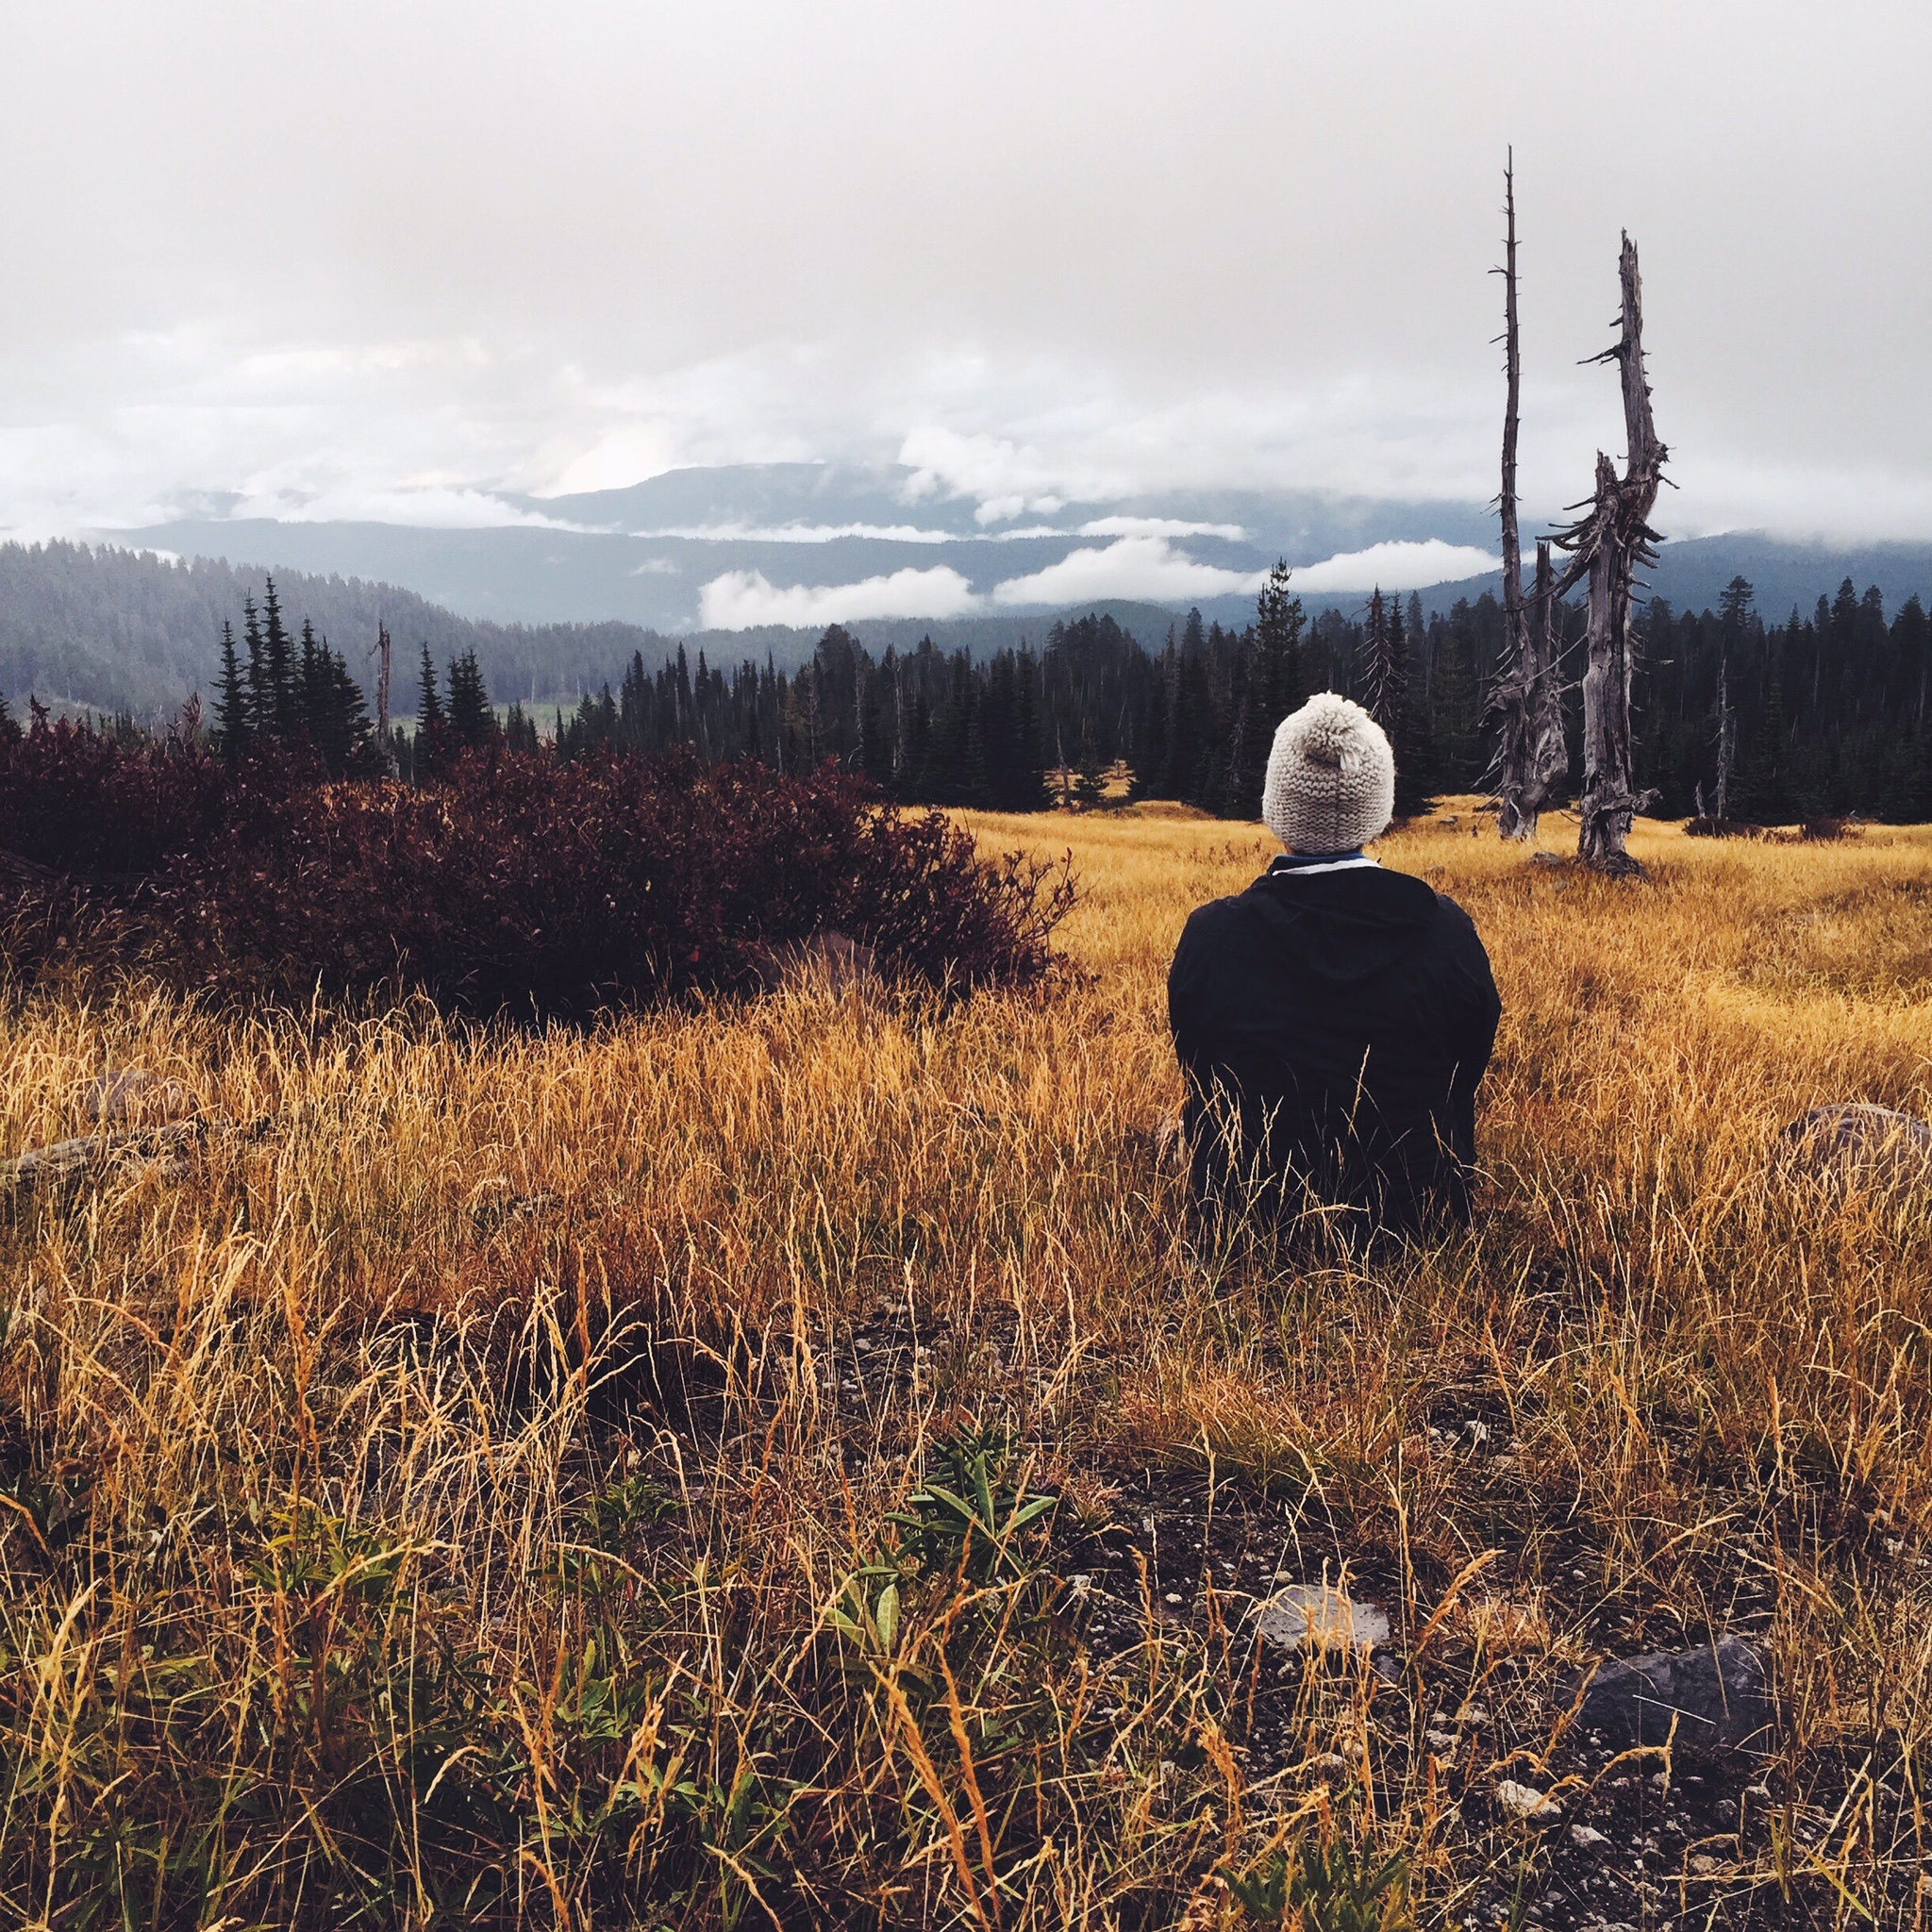 After hearing the warning bark of an elk, we wandered up to this meadow to find an astonishing view of the valley floor. A moment with nature was in order.